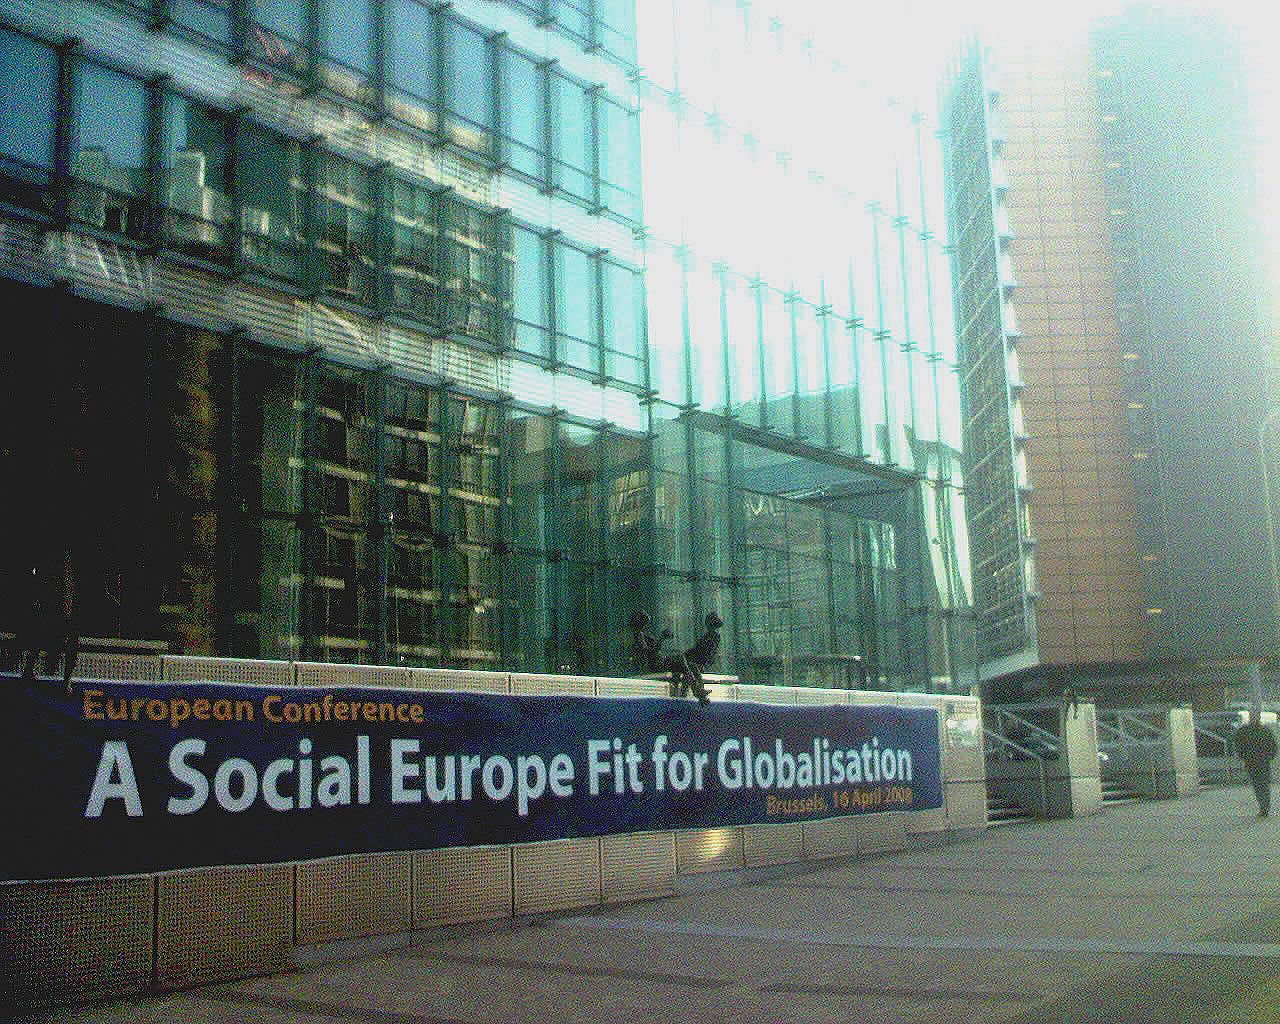 Is social Europe fit for globalization? 11-04-2008